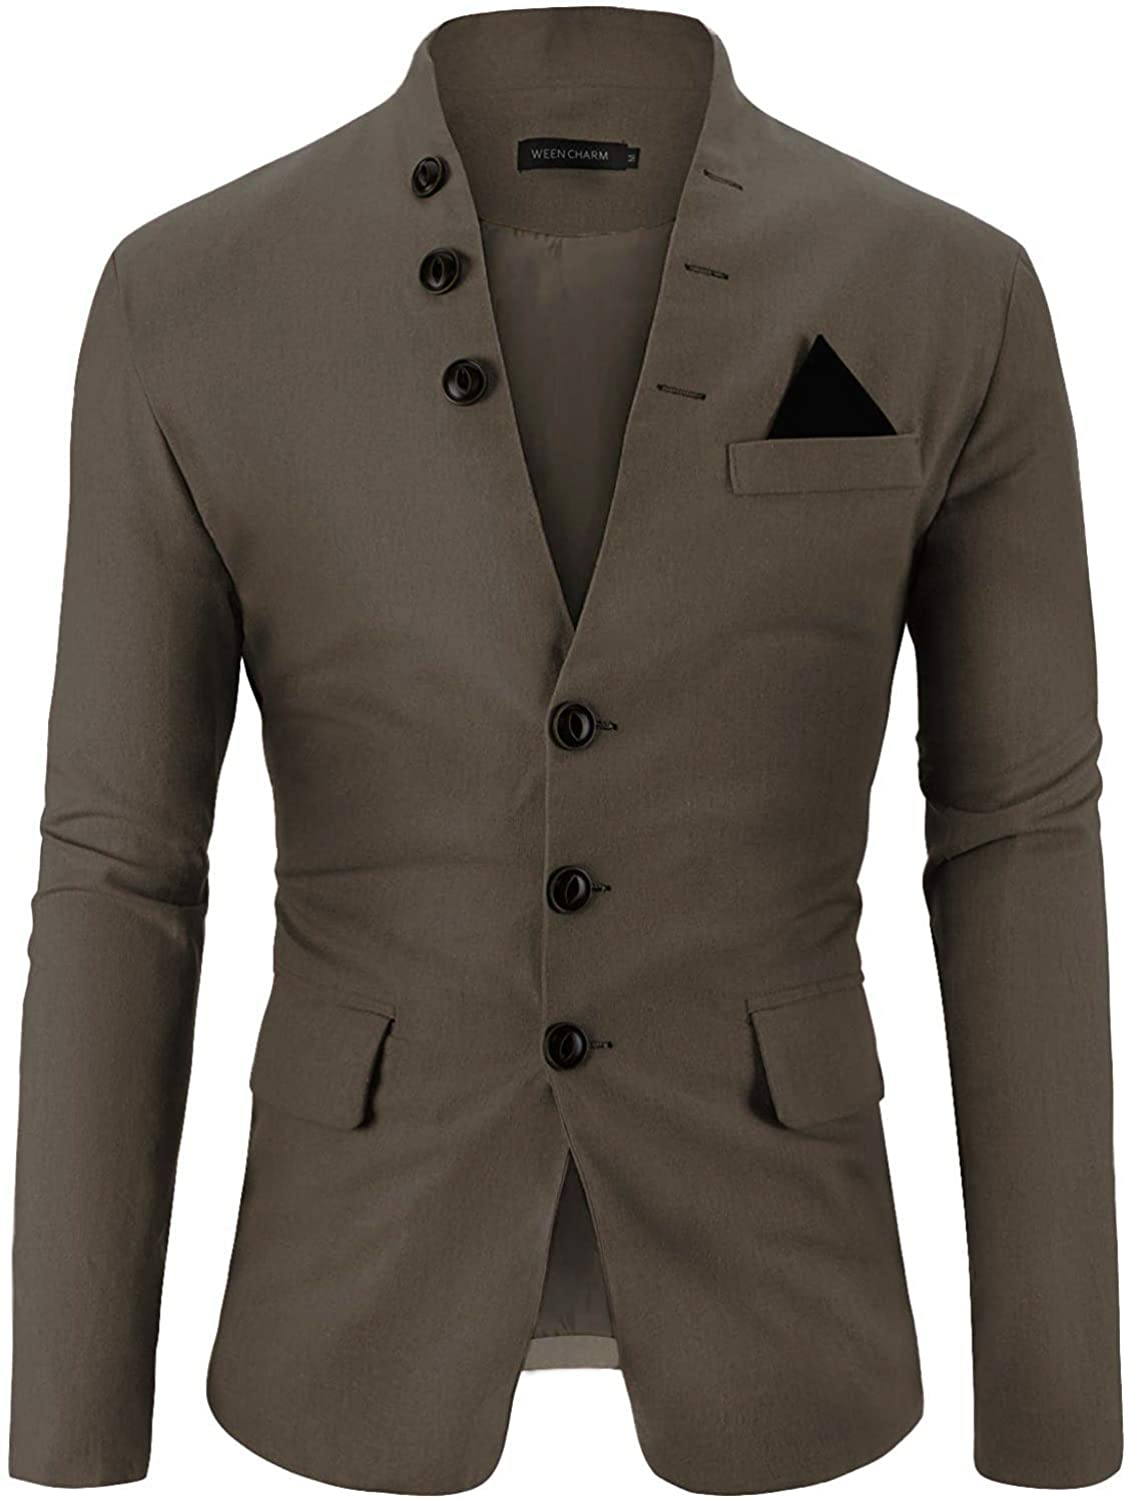 WEEN CHARM Mens Casual Slim Fit Standing Collar Blazer 3 Button Suit Sport Jackets (Khaki, 3X-Large)